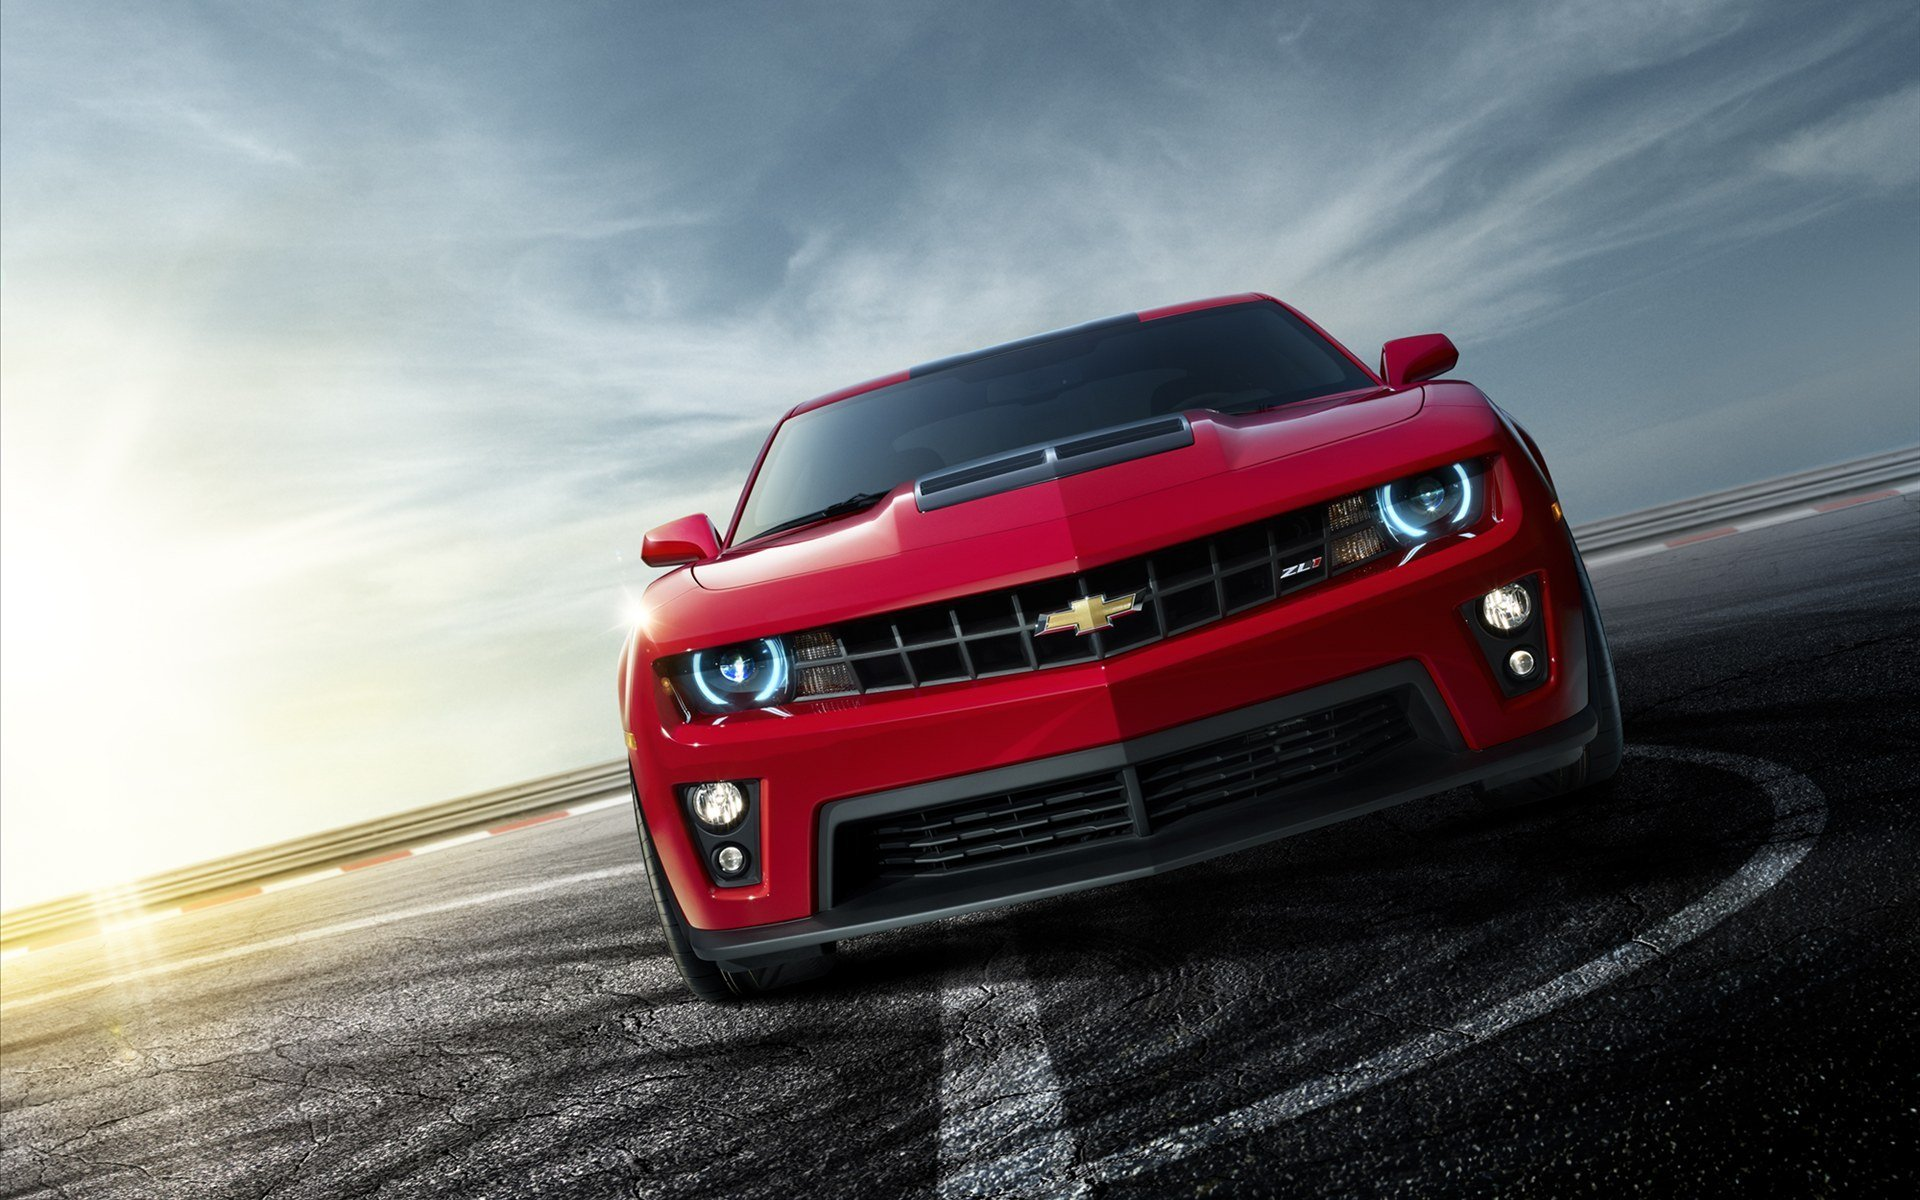 New Chevrolet Camaro Zl1 2012 Wallpaper Hd Car Wallpapers On This Month